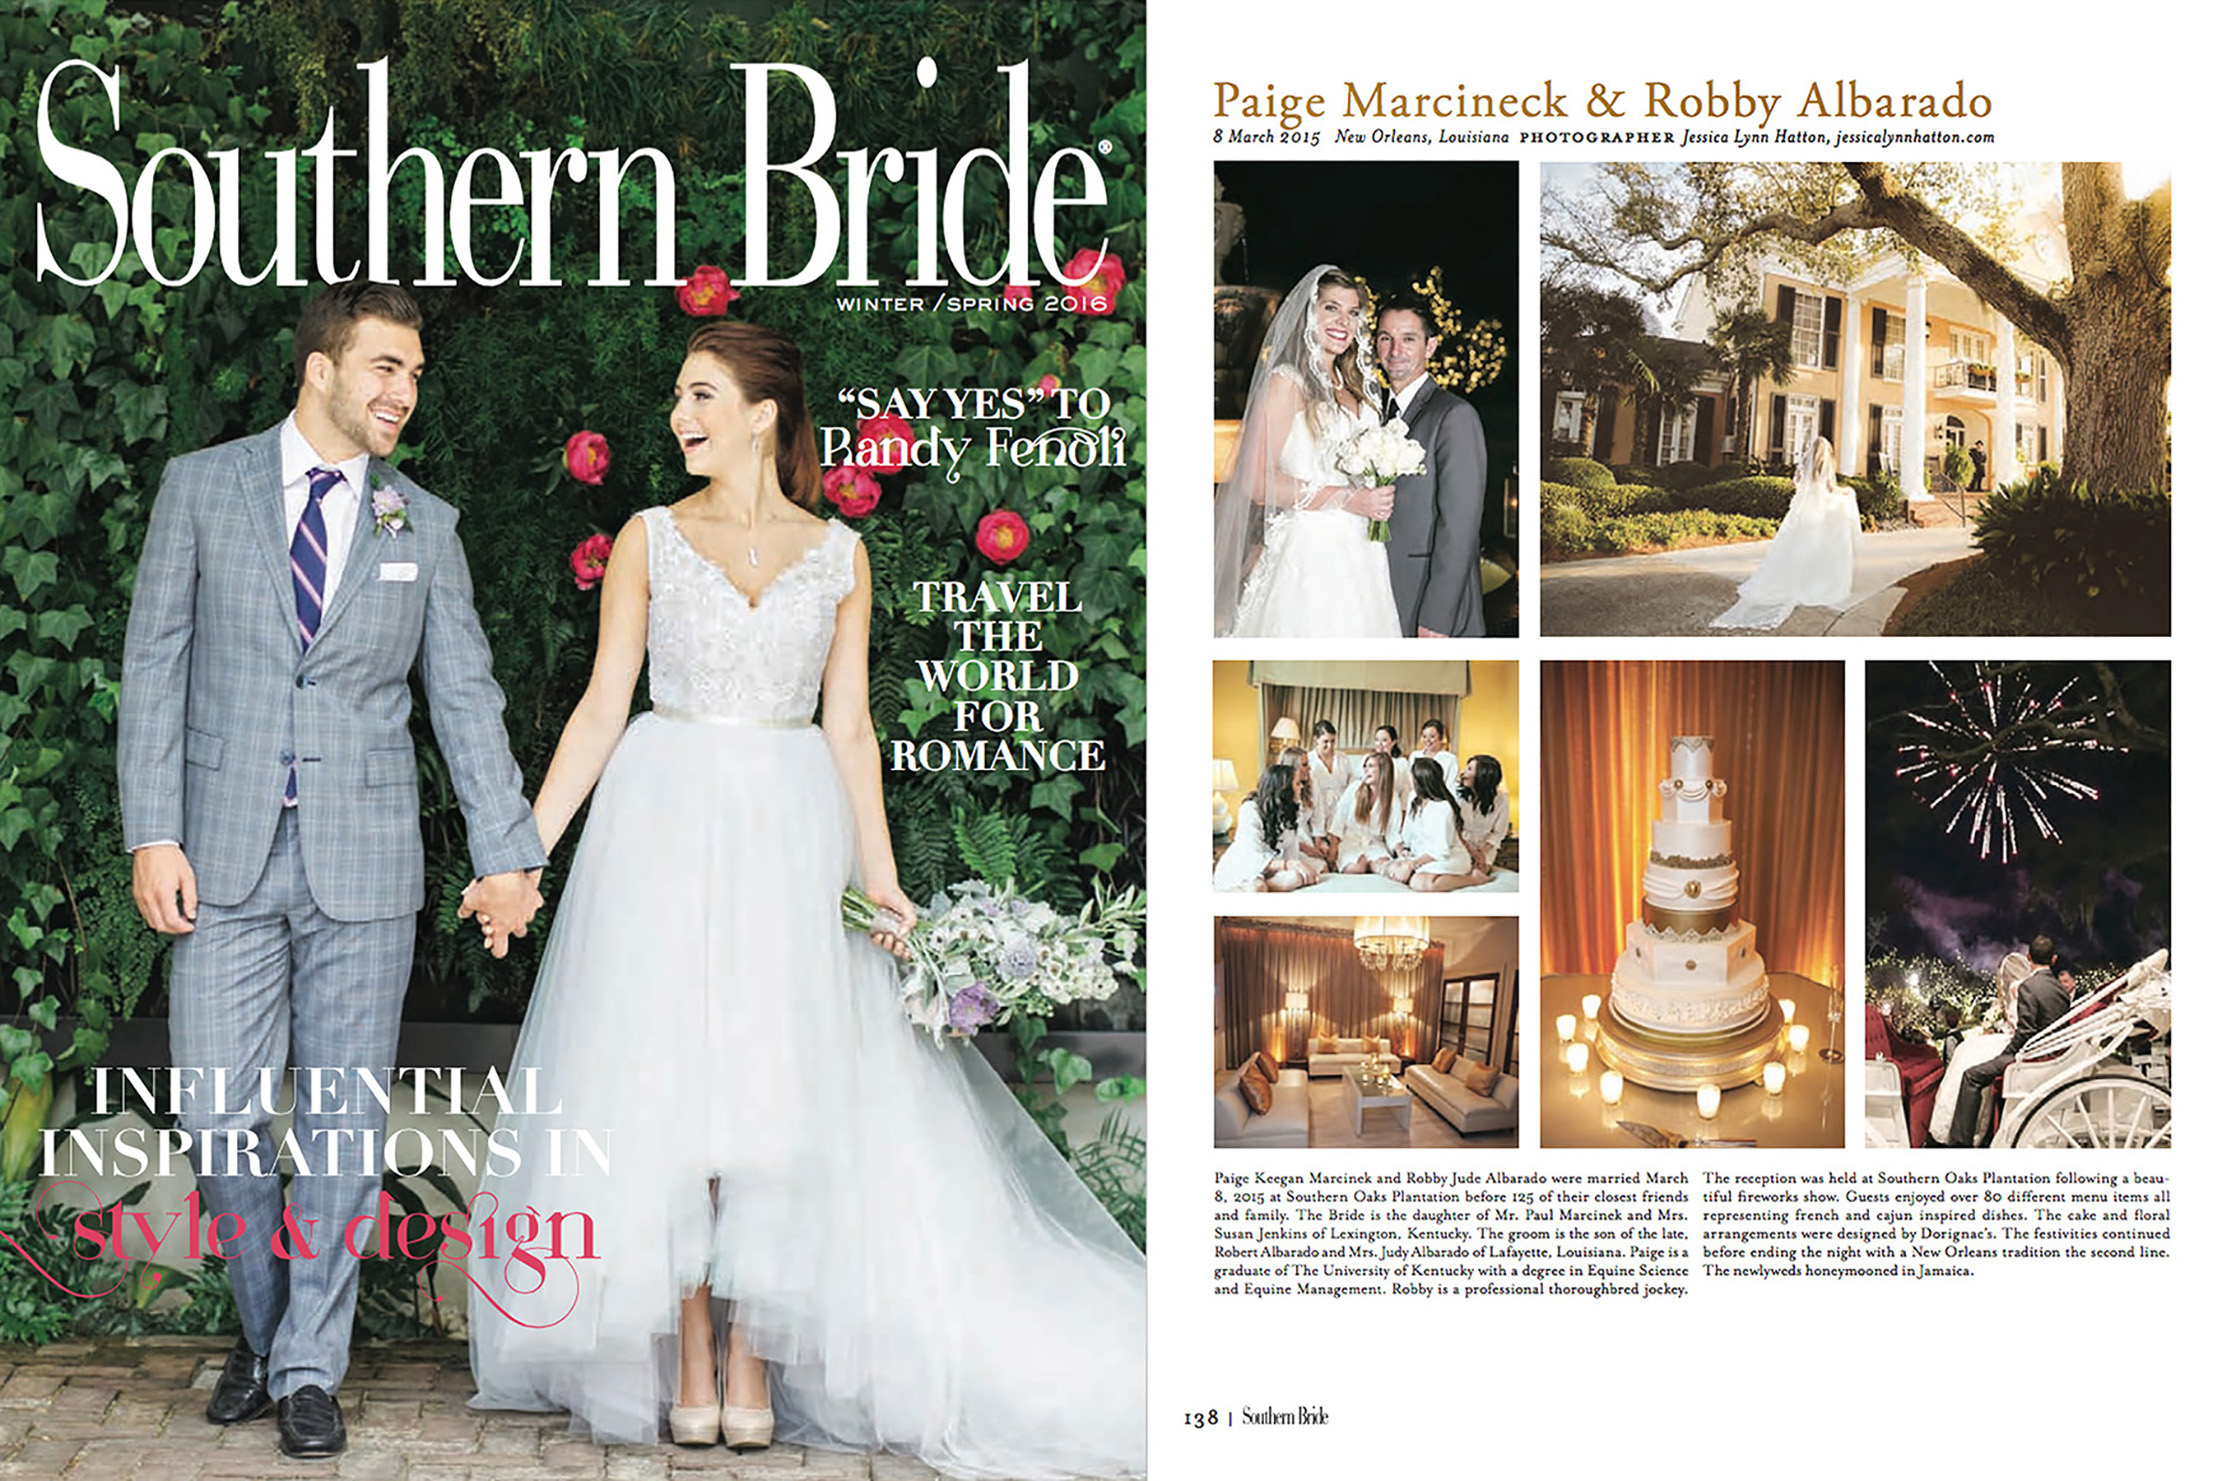 This New Orleans Wedding was featured in Southern Bride Magazine. This was shot at Southern Oaks Plantation and was a beautiful venue.